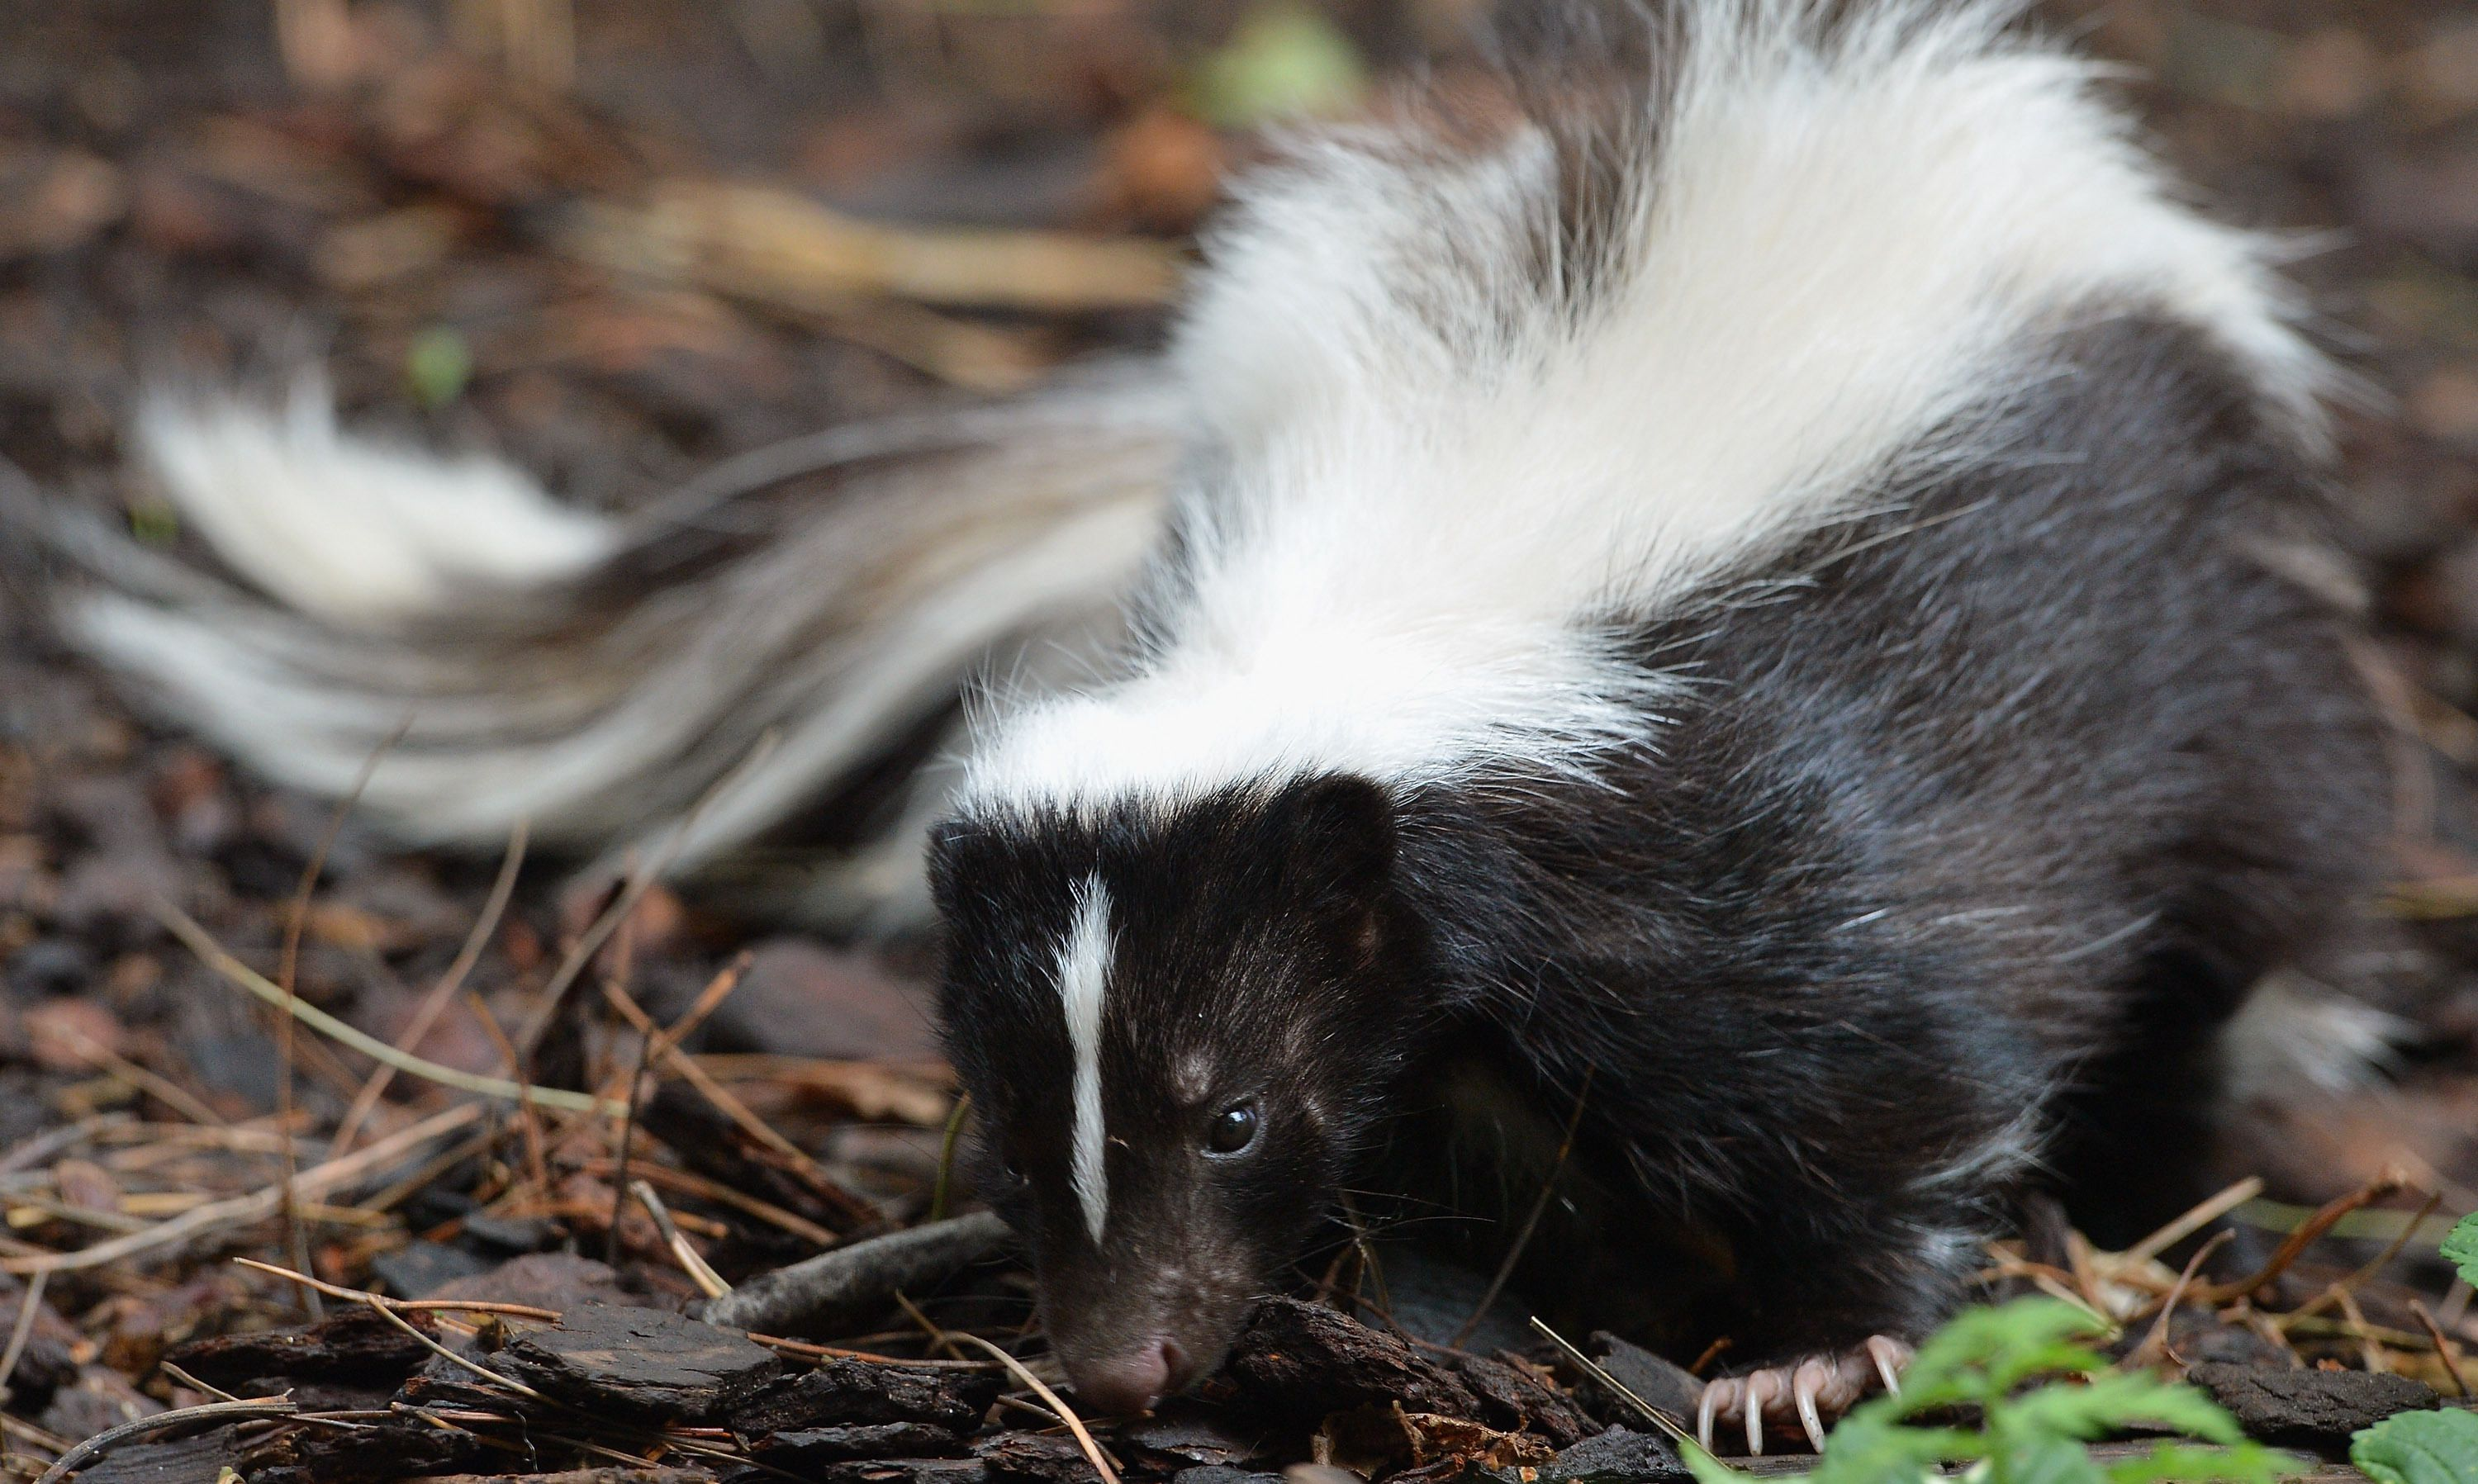 Remove Skunk Smell From Clothes And Camping Equipment